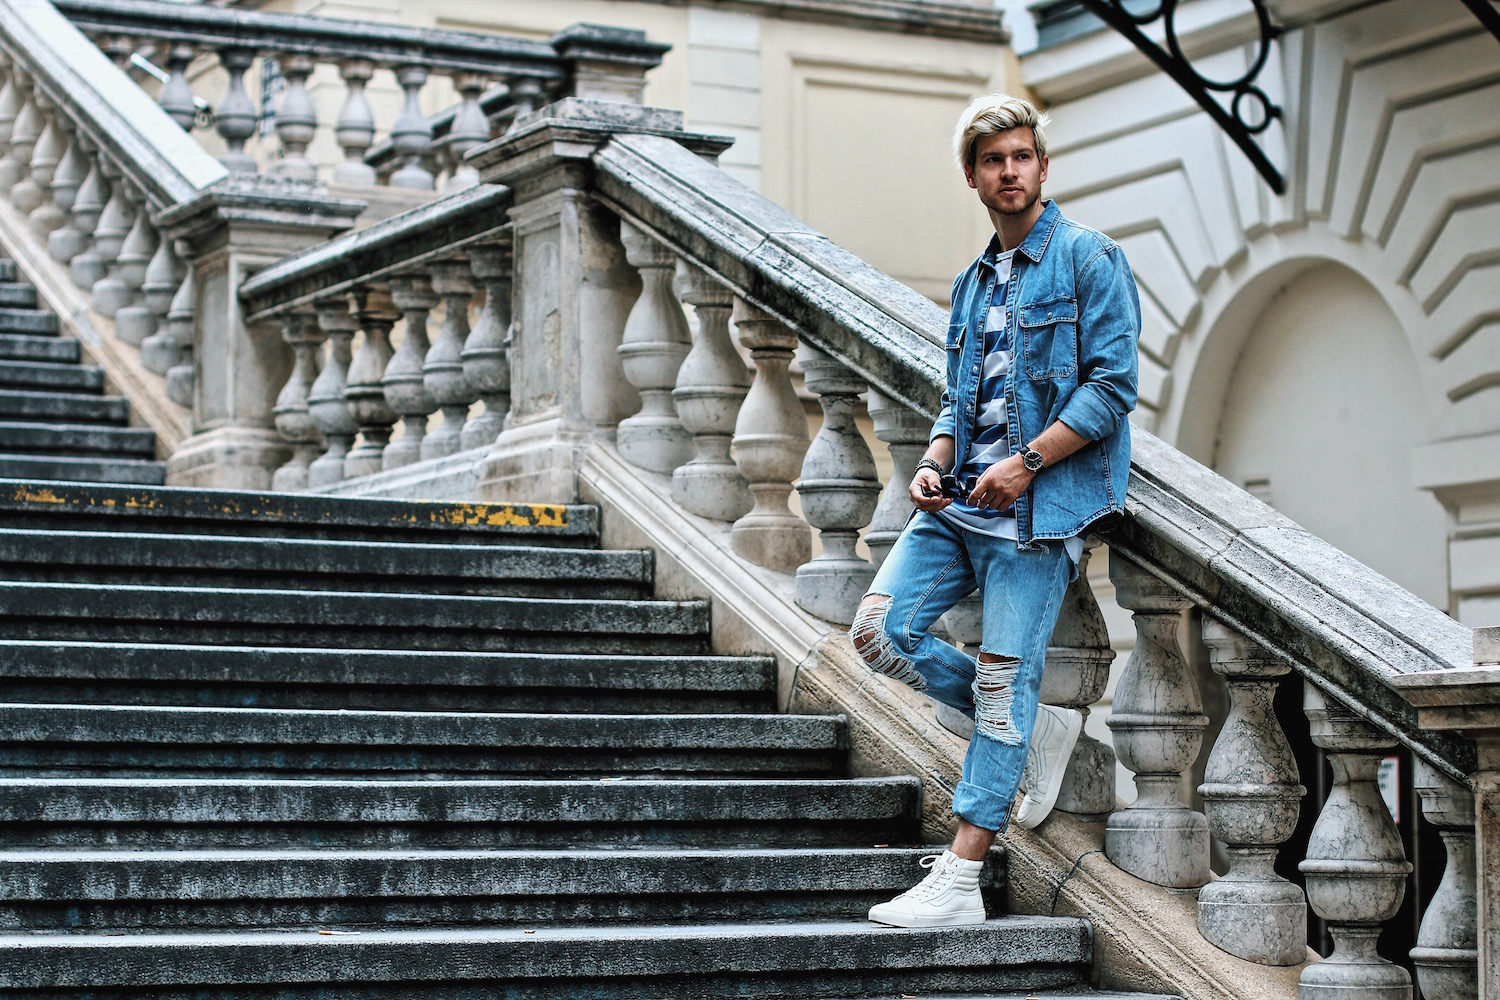 Outfit H&M Denim on Denim Look Ripped Jeans Denim Shirt Striped Tee by Meanwhile in Awesometown Austrian Mensfashion and Lifestyleblogger 3